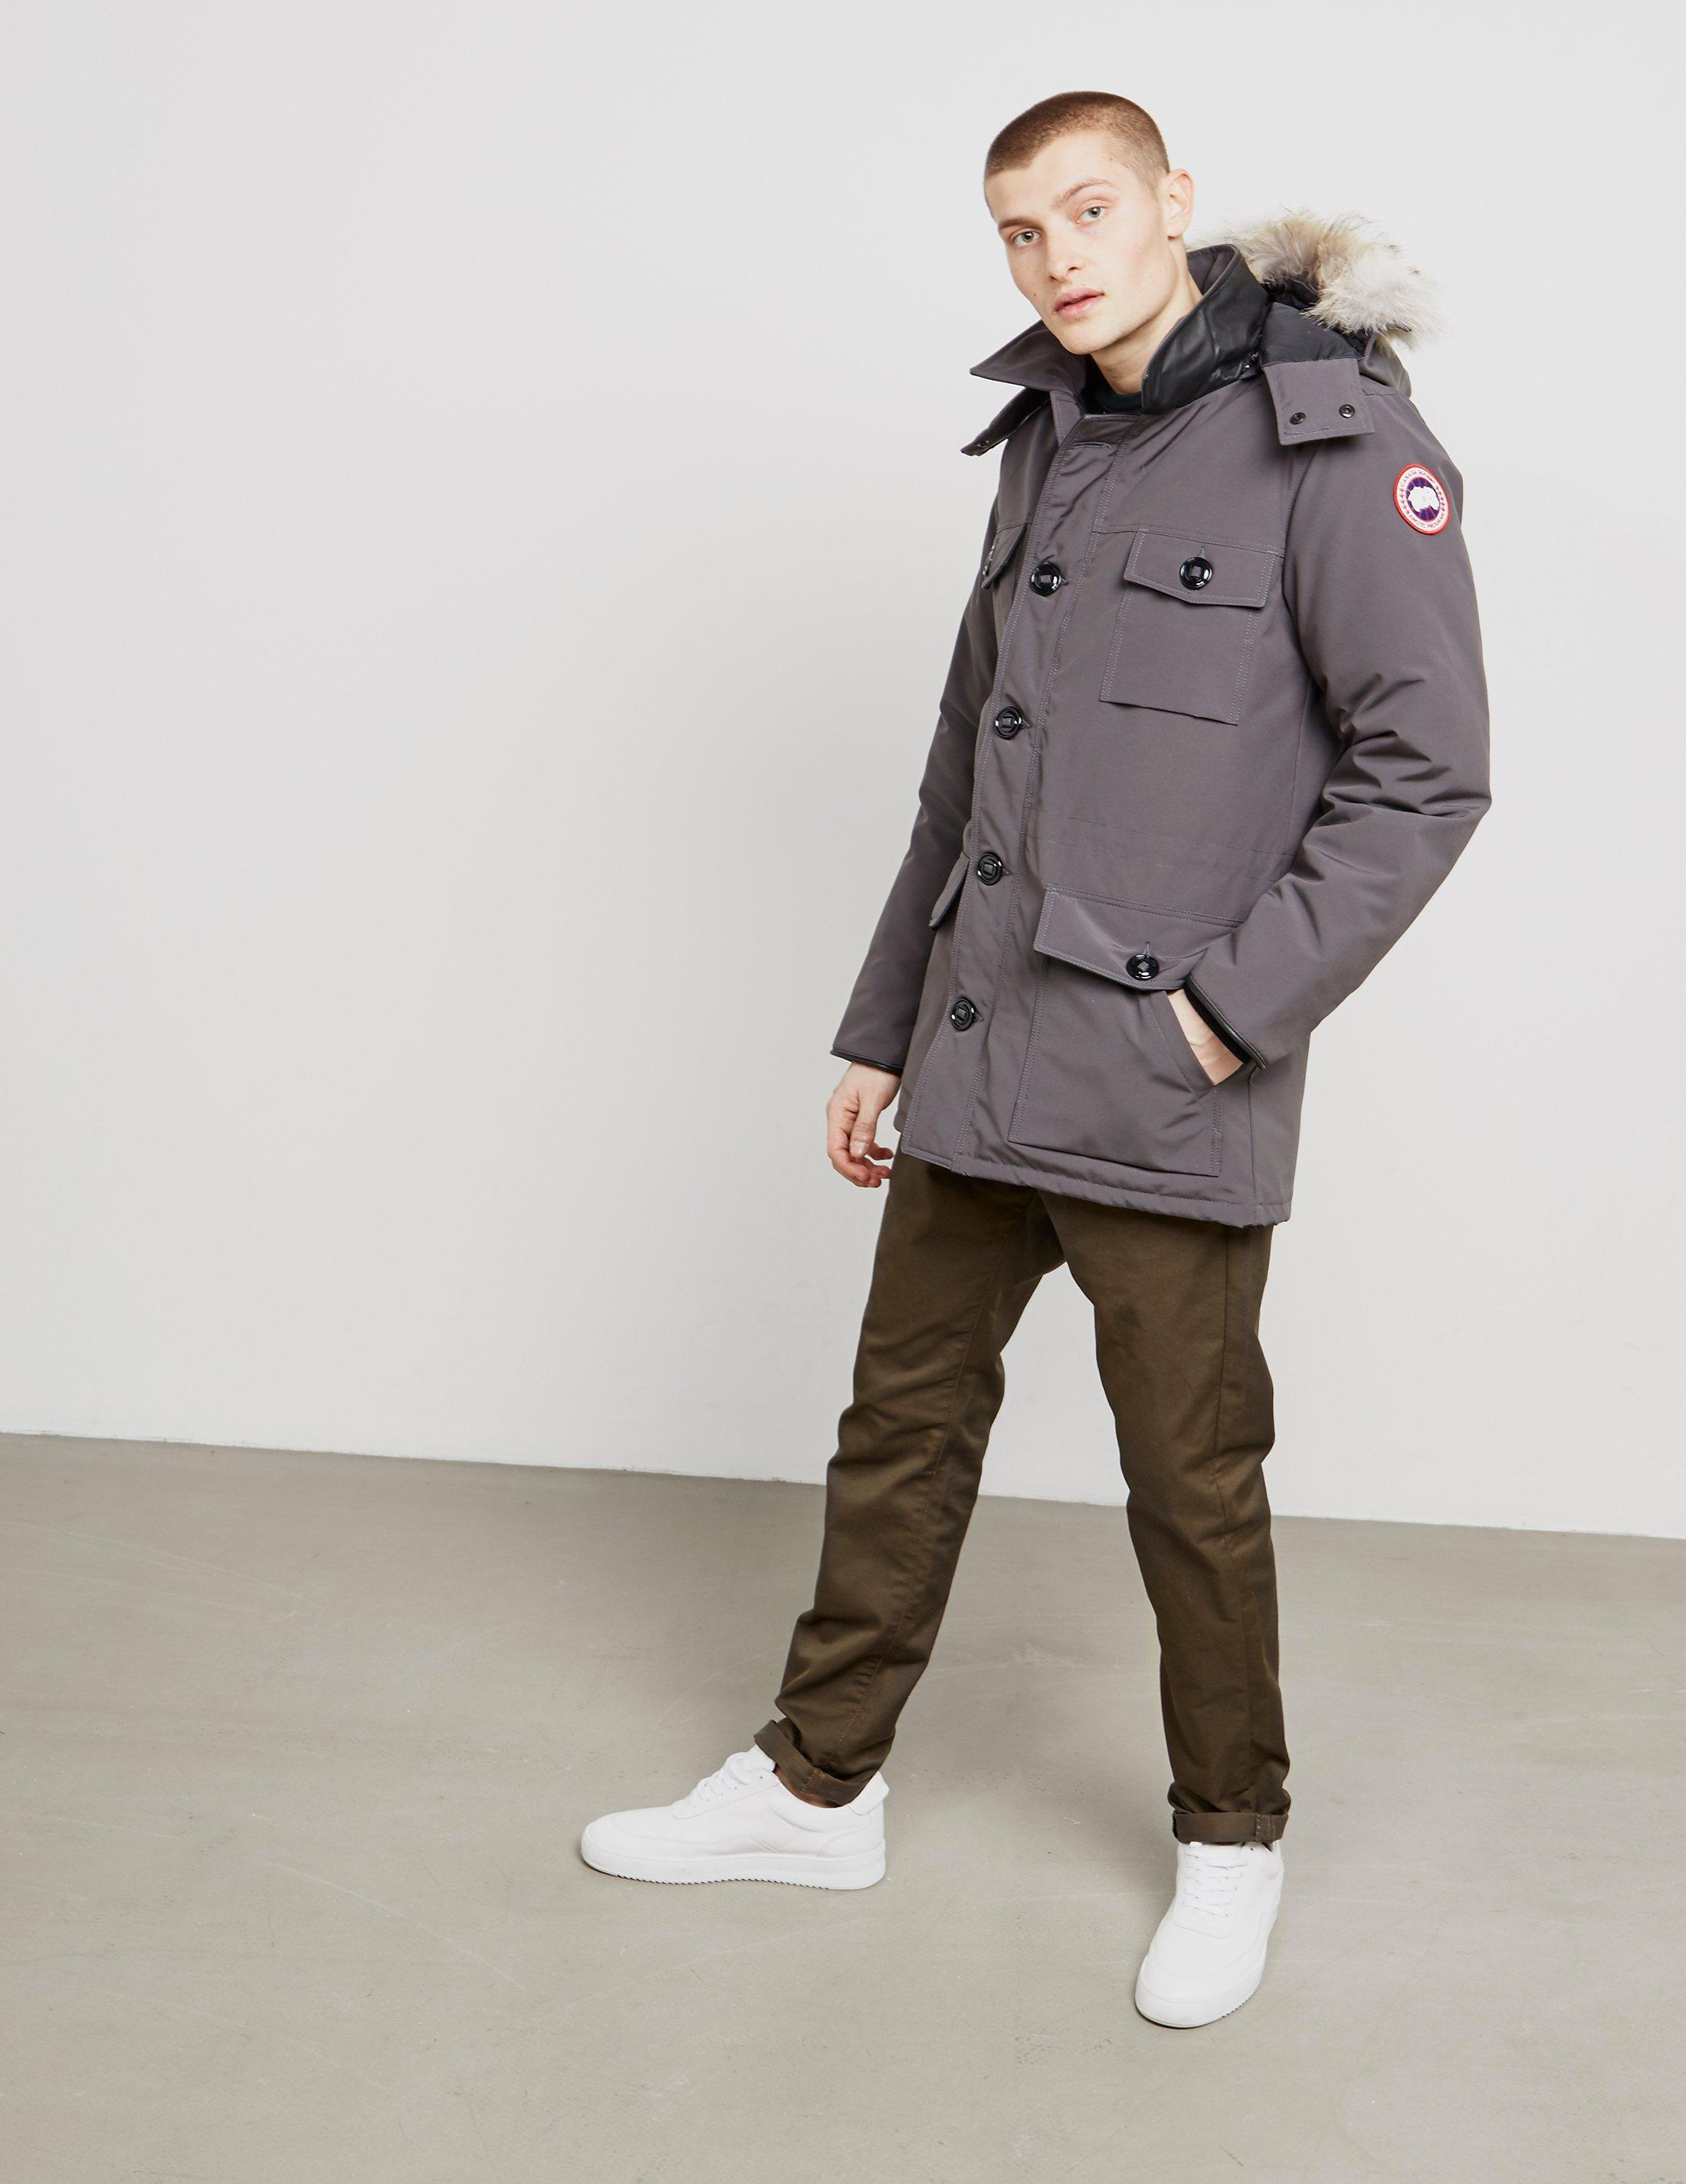 711fec09bc26 ... cheap lyst canada goose mens banff padded parka jacket grey in gray for  4d0fc a7d6e